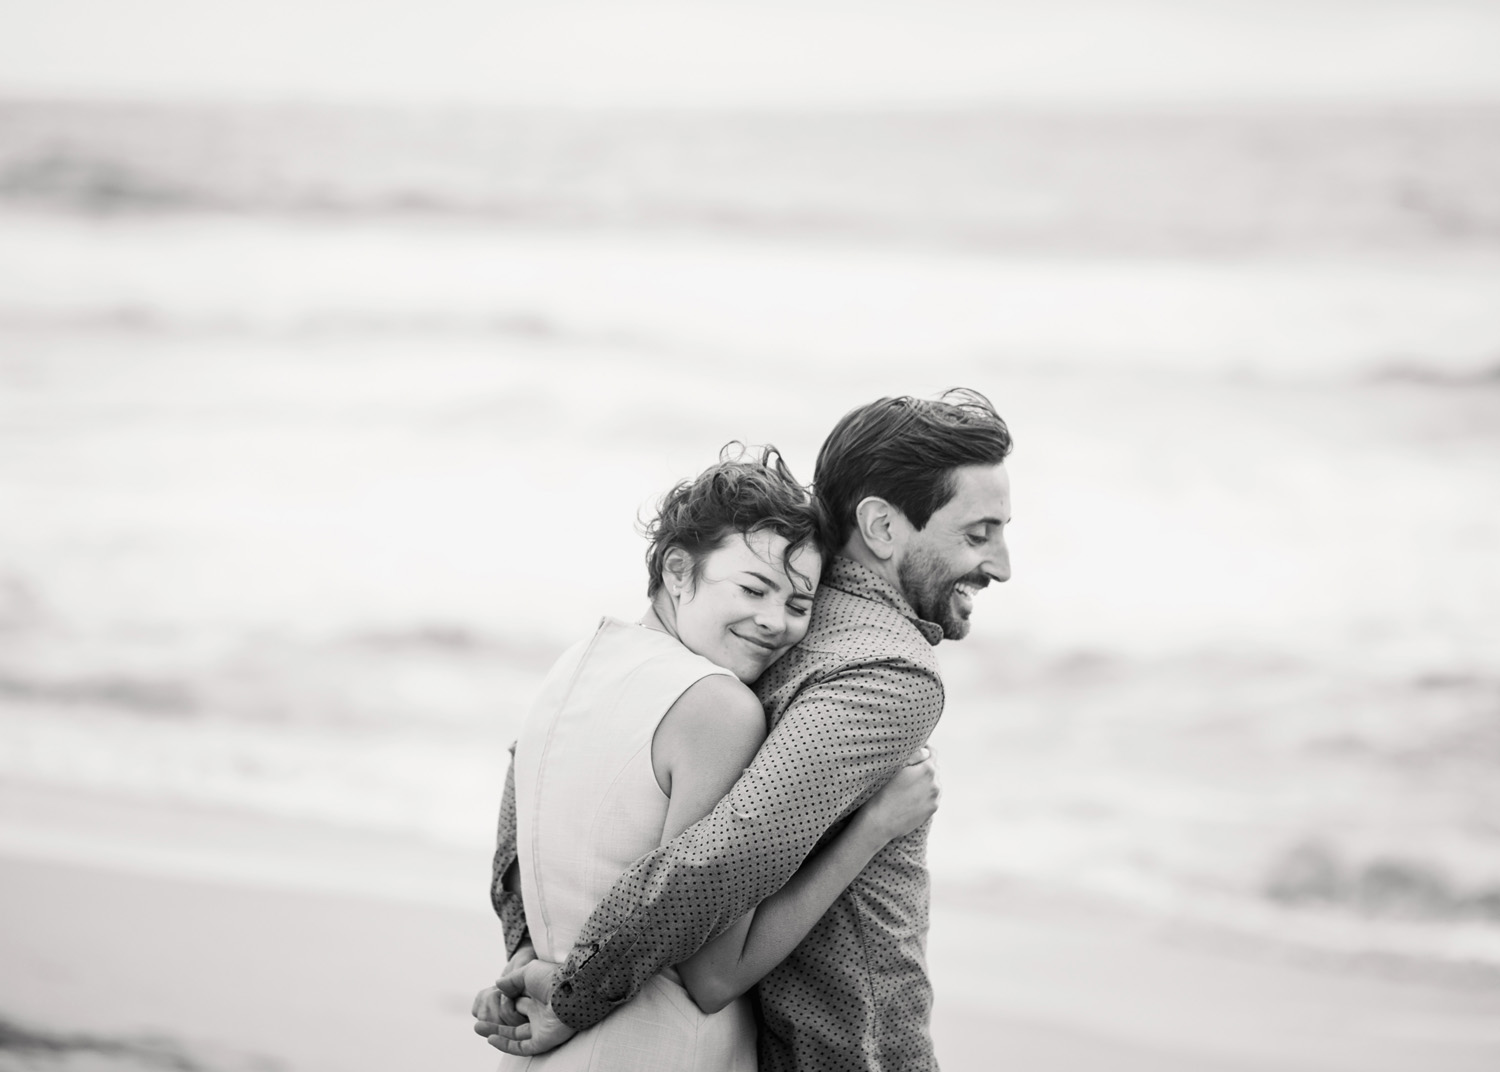 beach engagement photo couple hugs to keep warm on a foggy windy day in at the beach